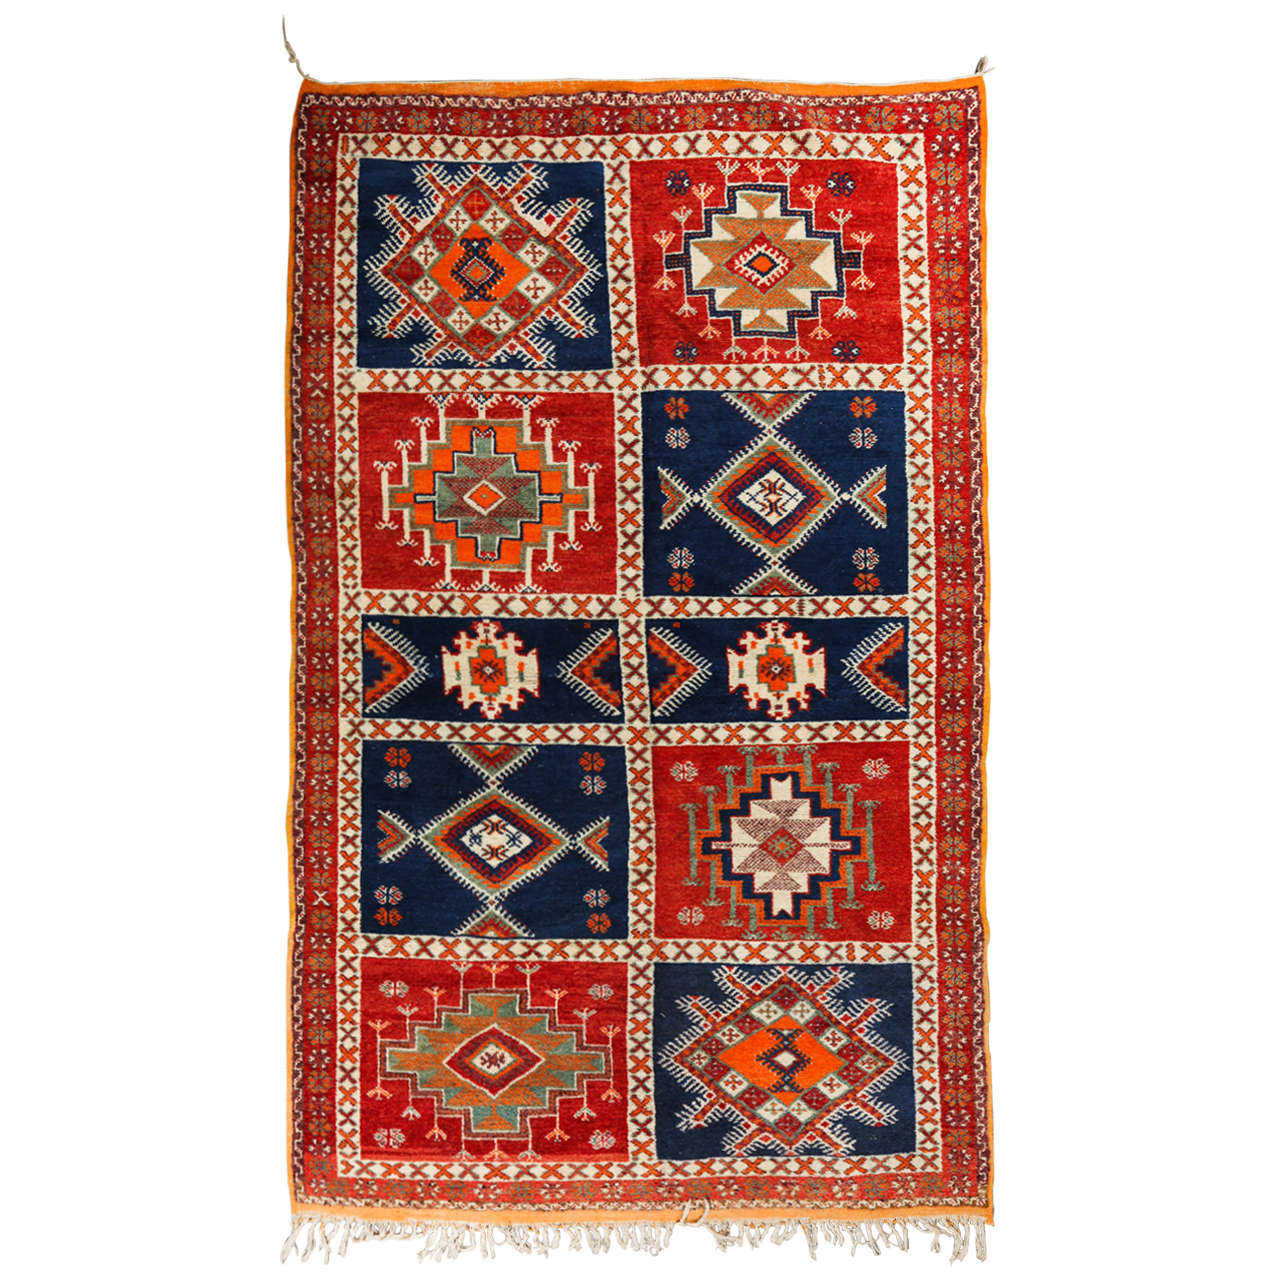 moroccan tribal rugs  Home Decor